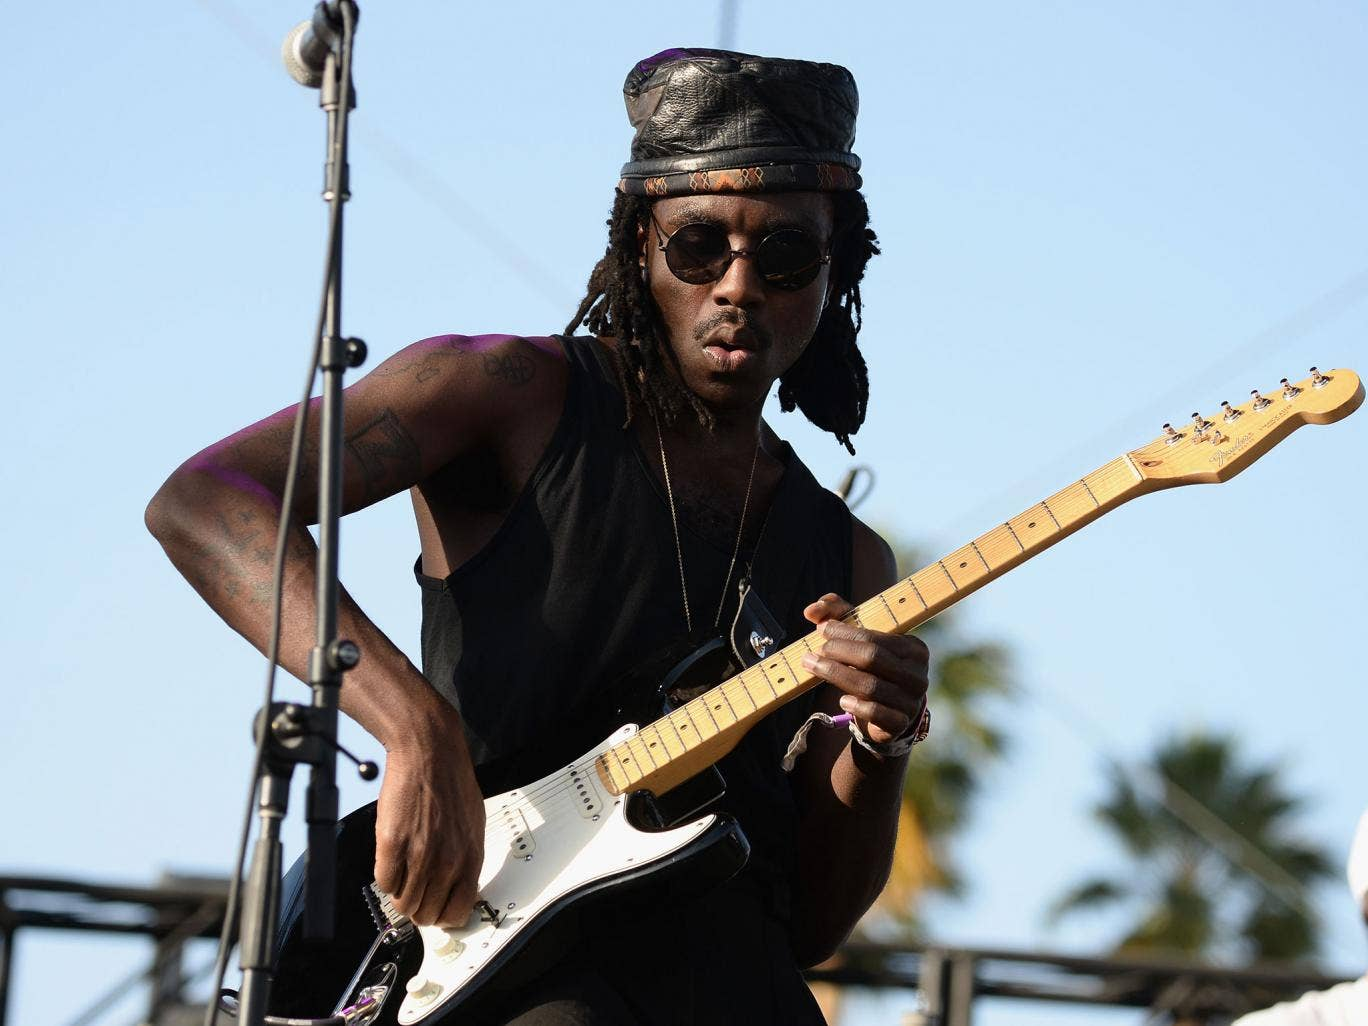 Dev Hynes says the alleged assault left his 'bruised' and 'shaken' but happy to be alive